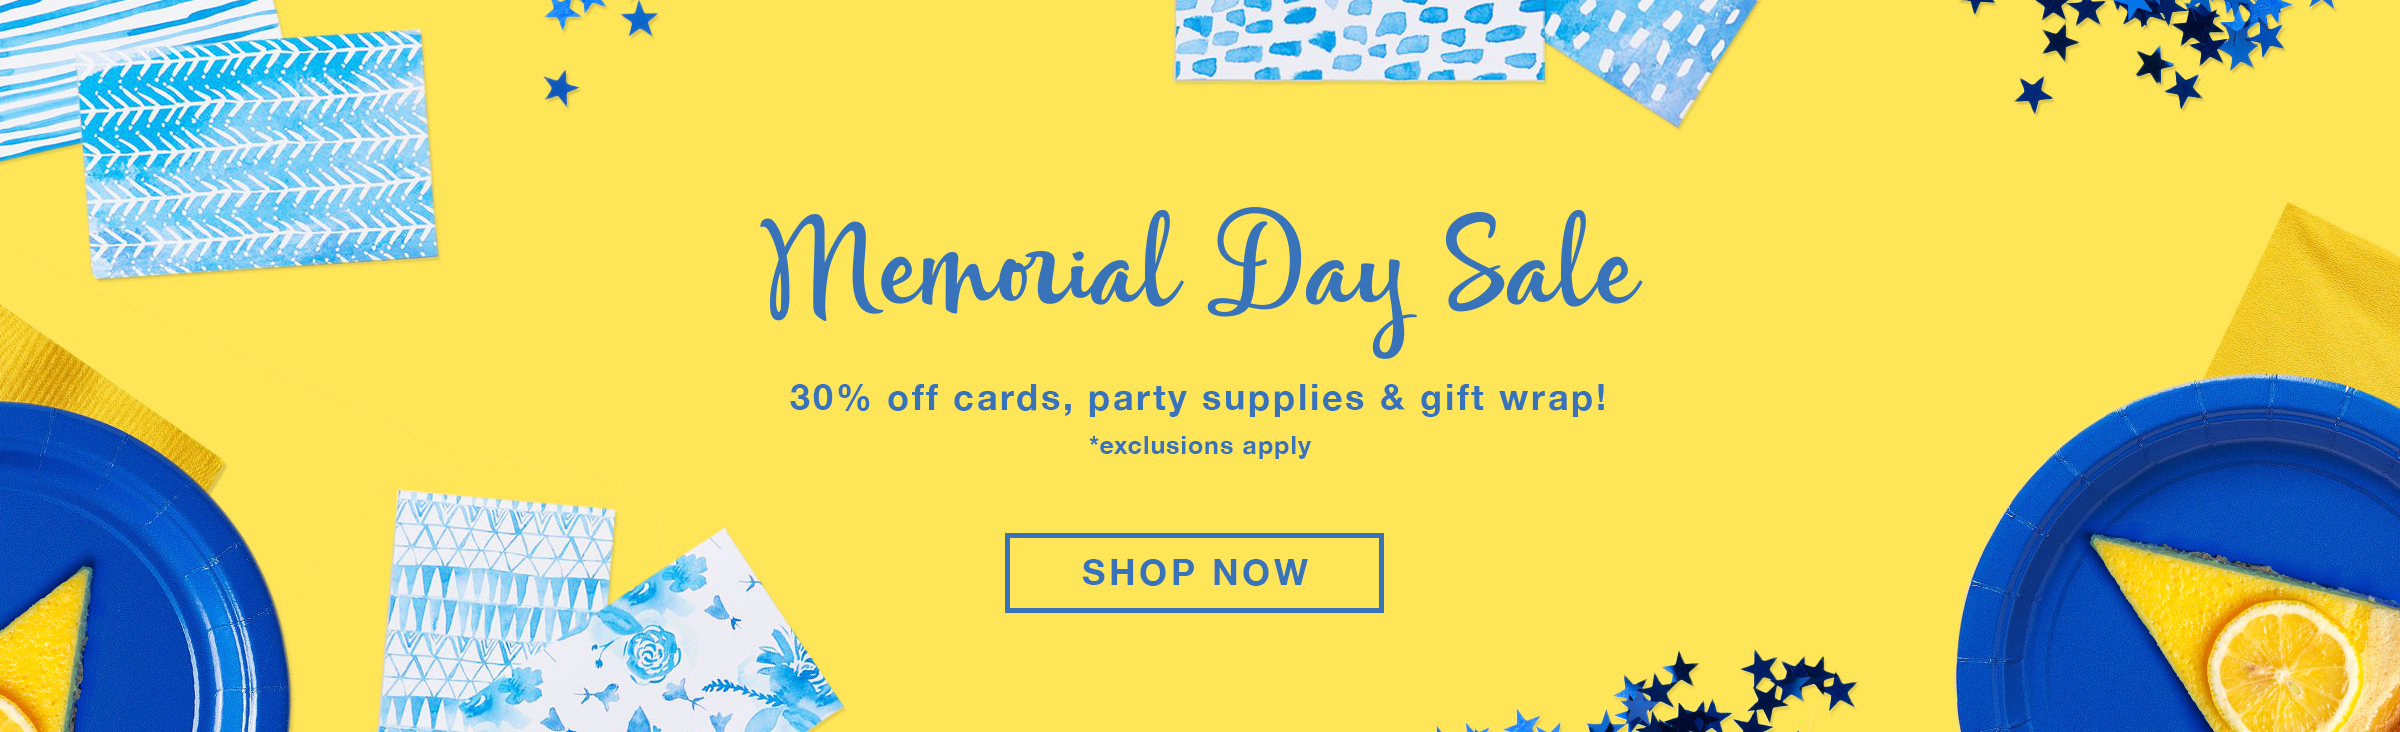 Paper cards, stationery, plates, star confetti and napkins. Memorial Day Sale, 30% off cards, party supplies, and gift wrap.